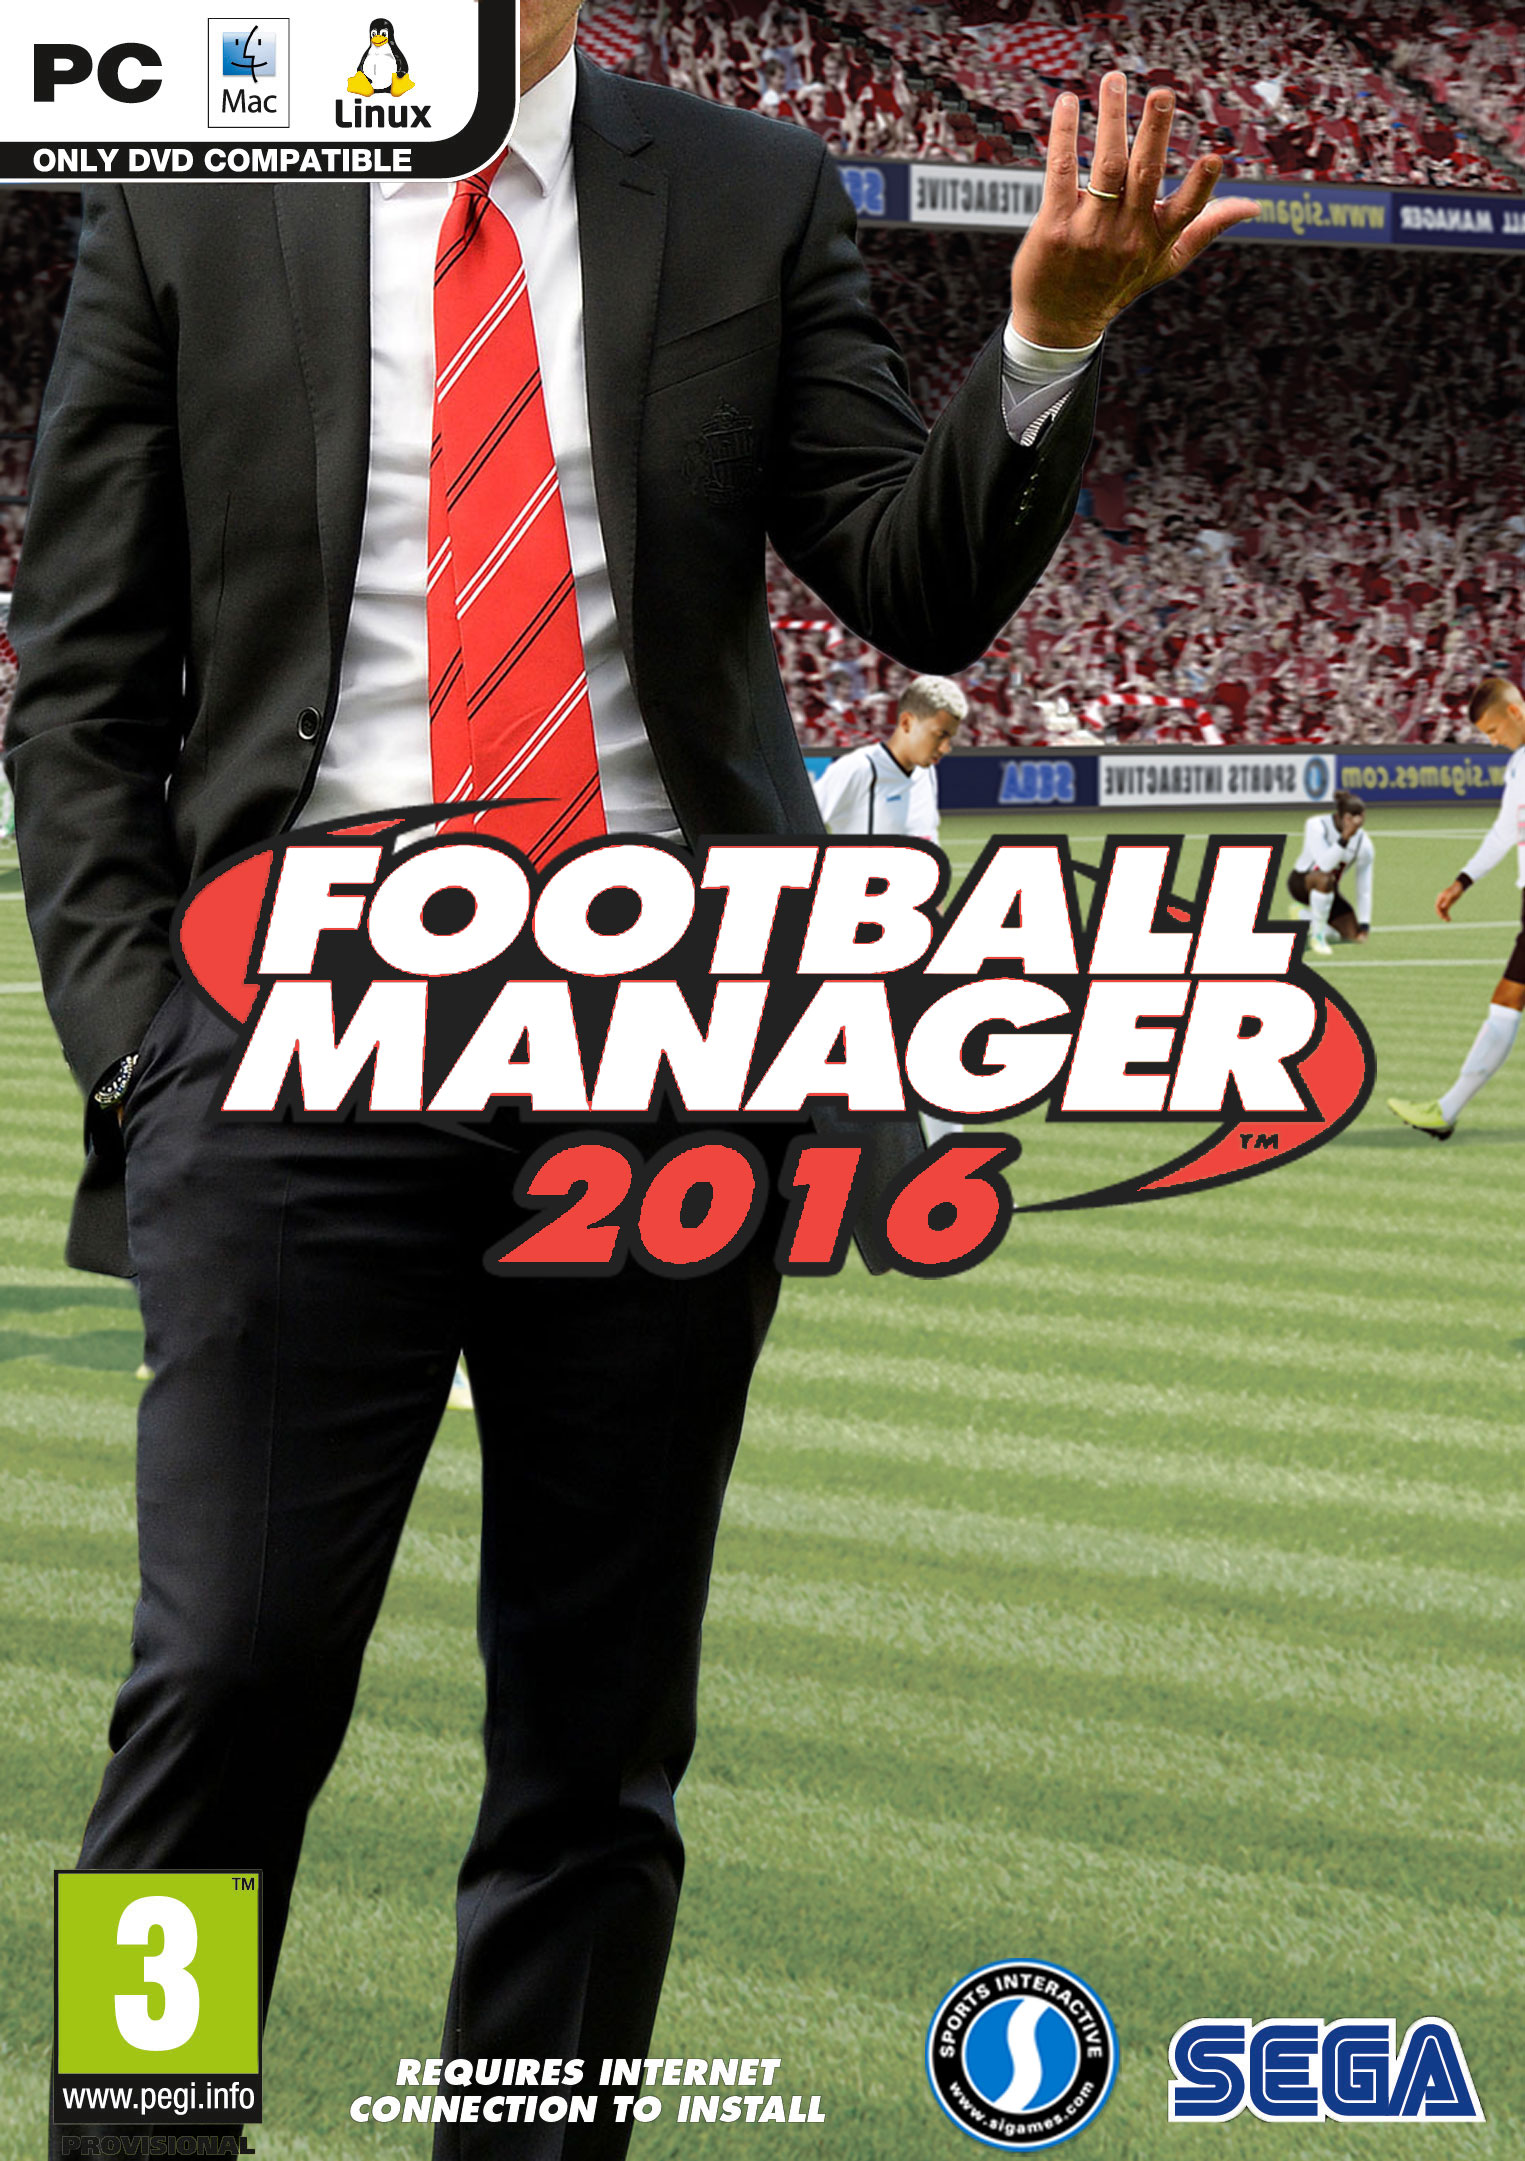 Football Manager 2016 (Steam KEY) +GIFTS